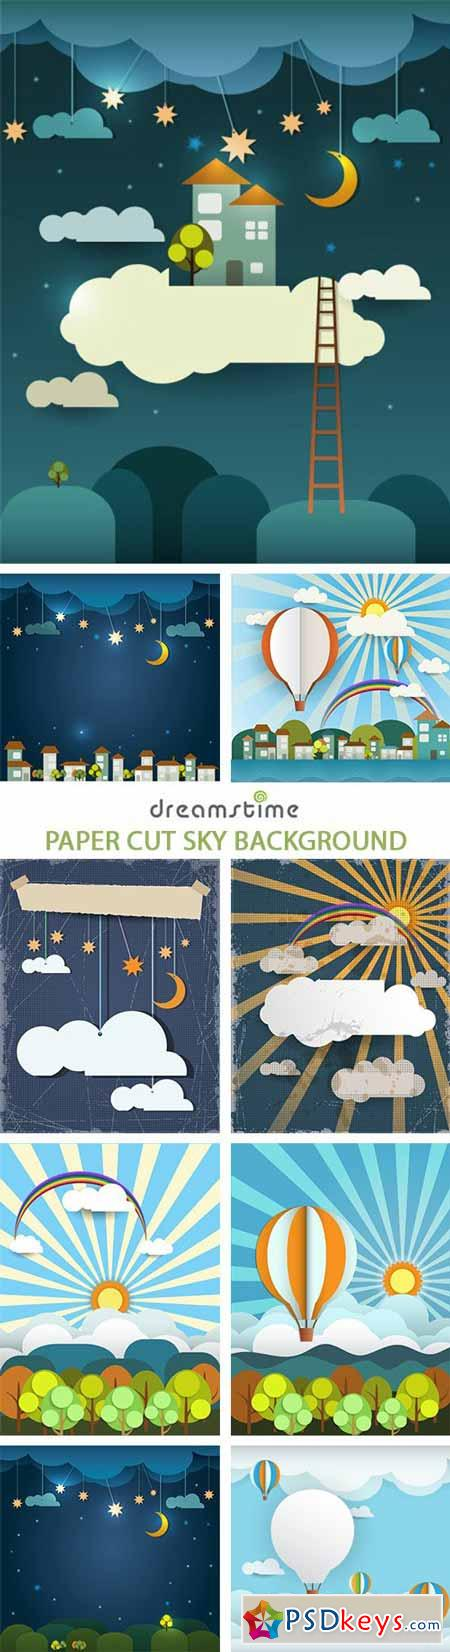 Paper Cut Sky Background - 25xEPS